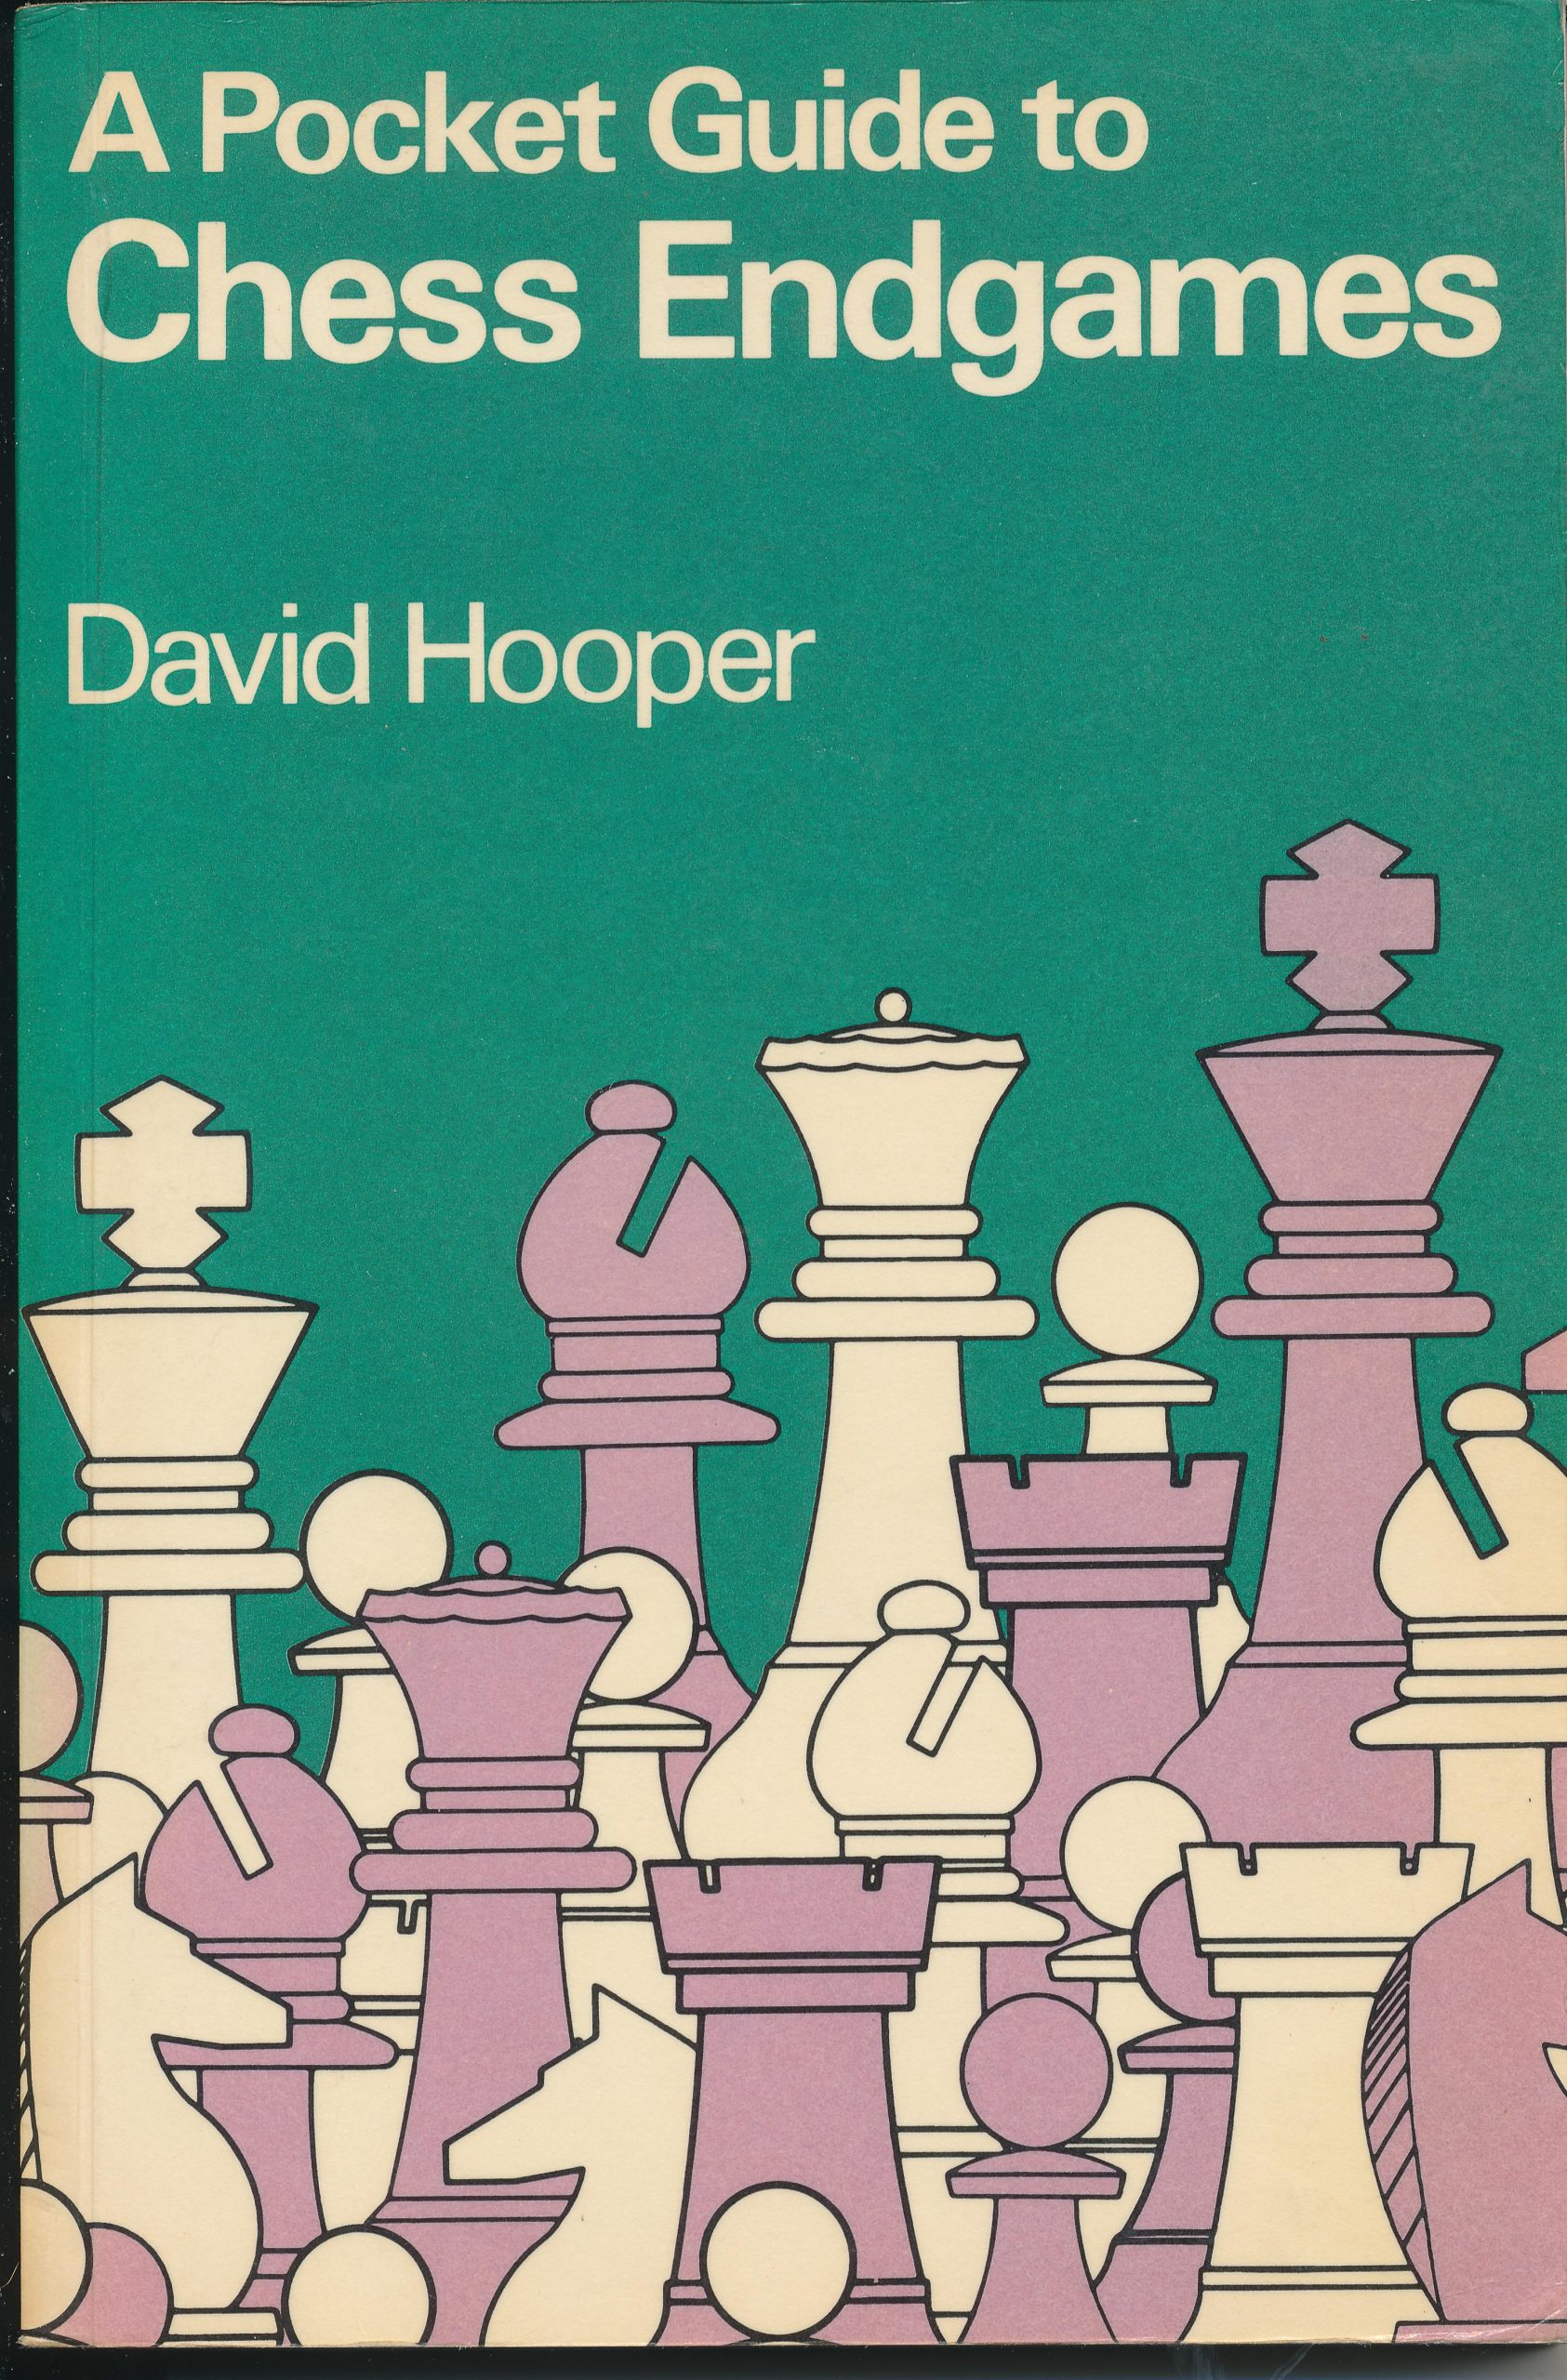 A Pocket Guide to Chess Endgames, David Hooper, Bell & Hyman Limited, London, 1970, ISBN 0 7135 1761 1